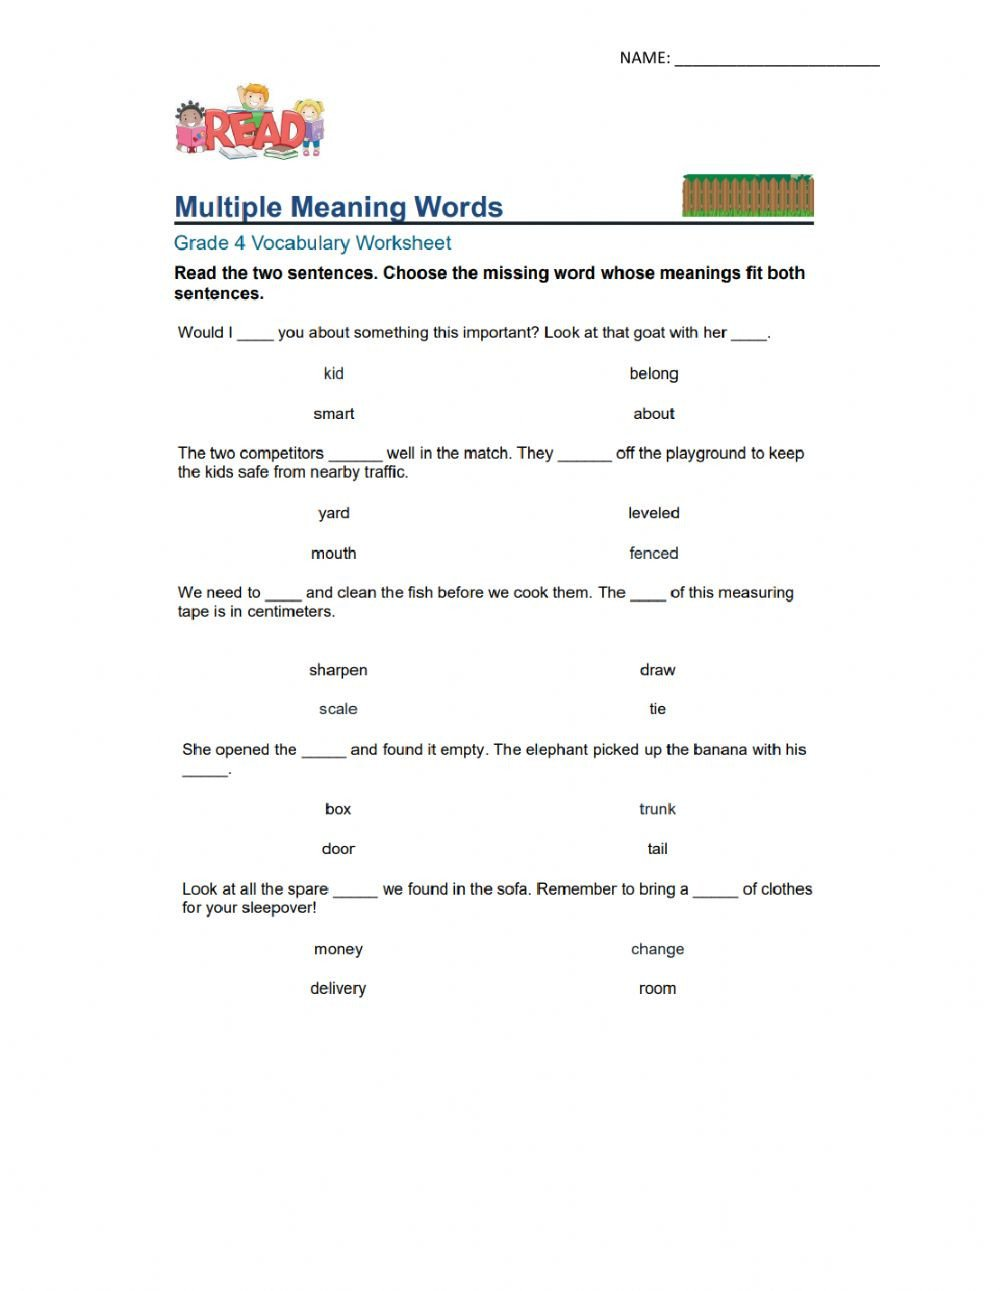 Multiple Meaning Words Worksheet Multiple Meaning Words Interactive Worksheet